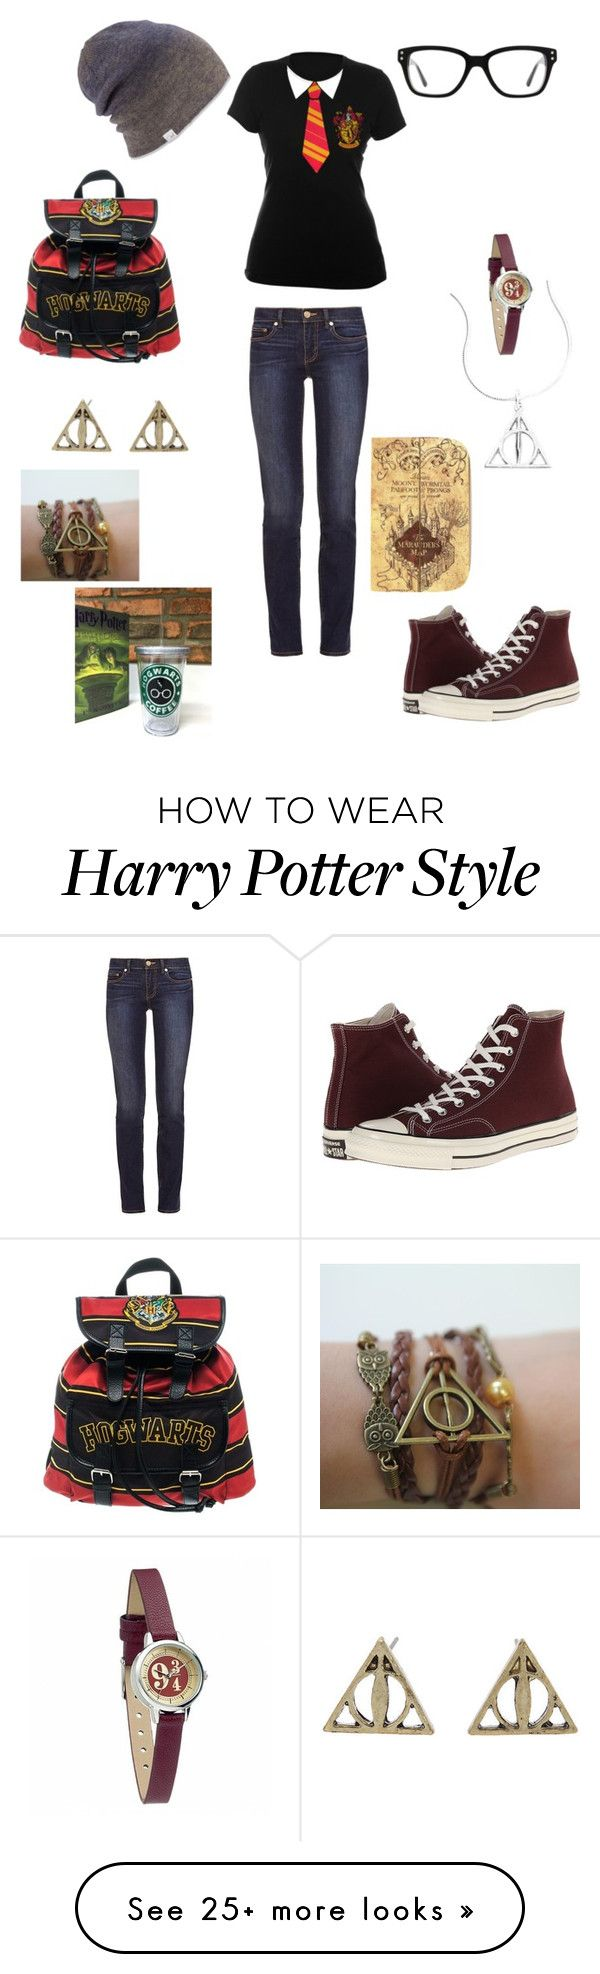 """Harry Potter nerd"" by hadespirit22 on Polyvore featuring Coal, Converse and Tory Burch"